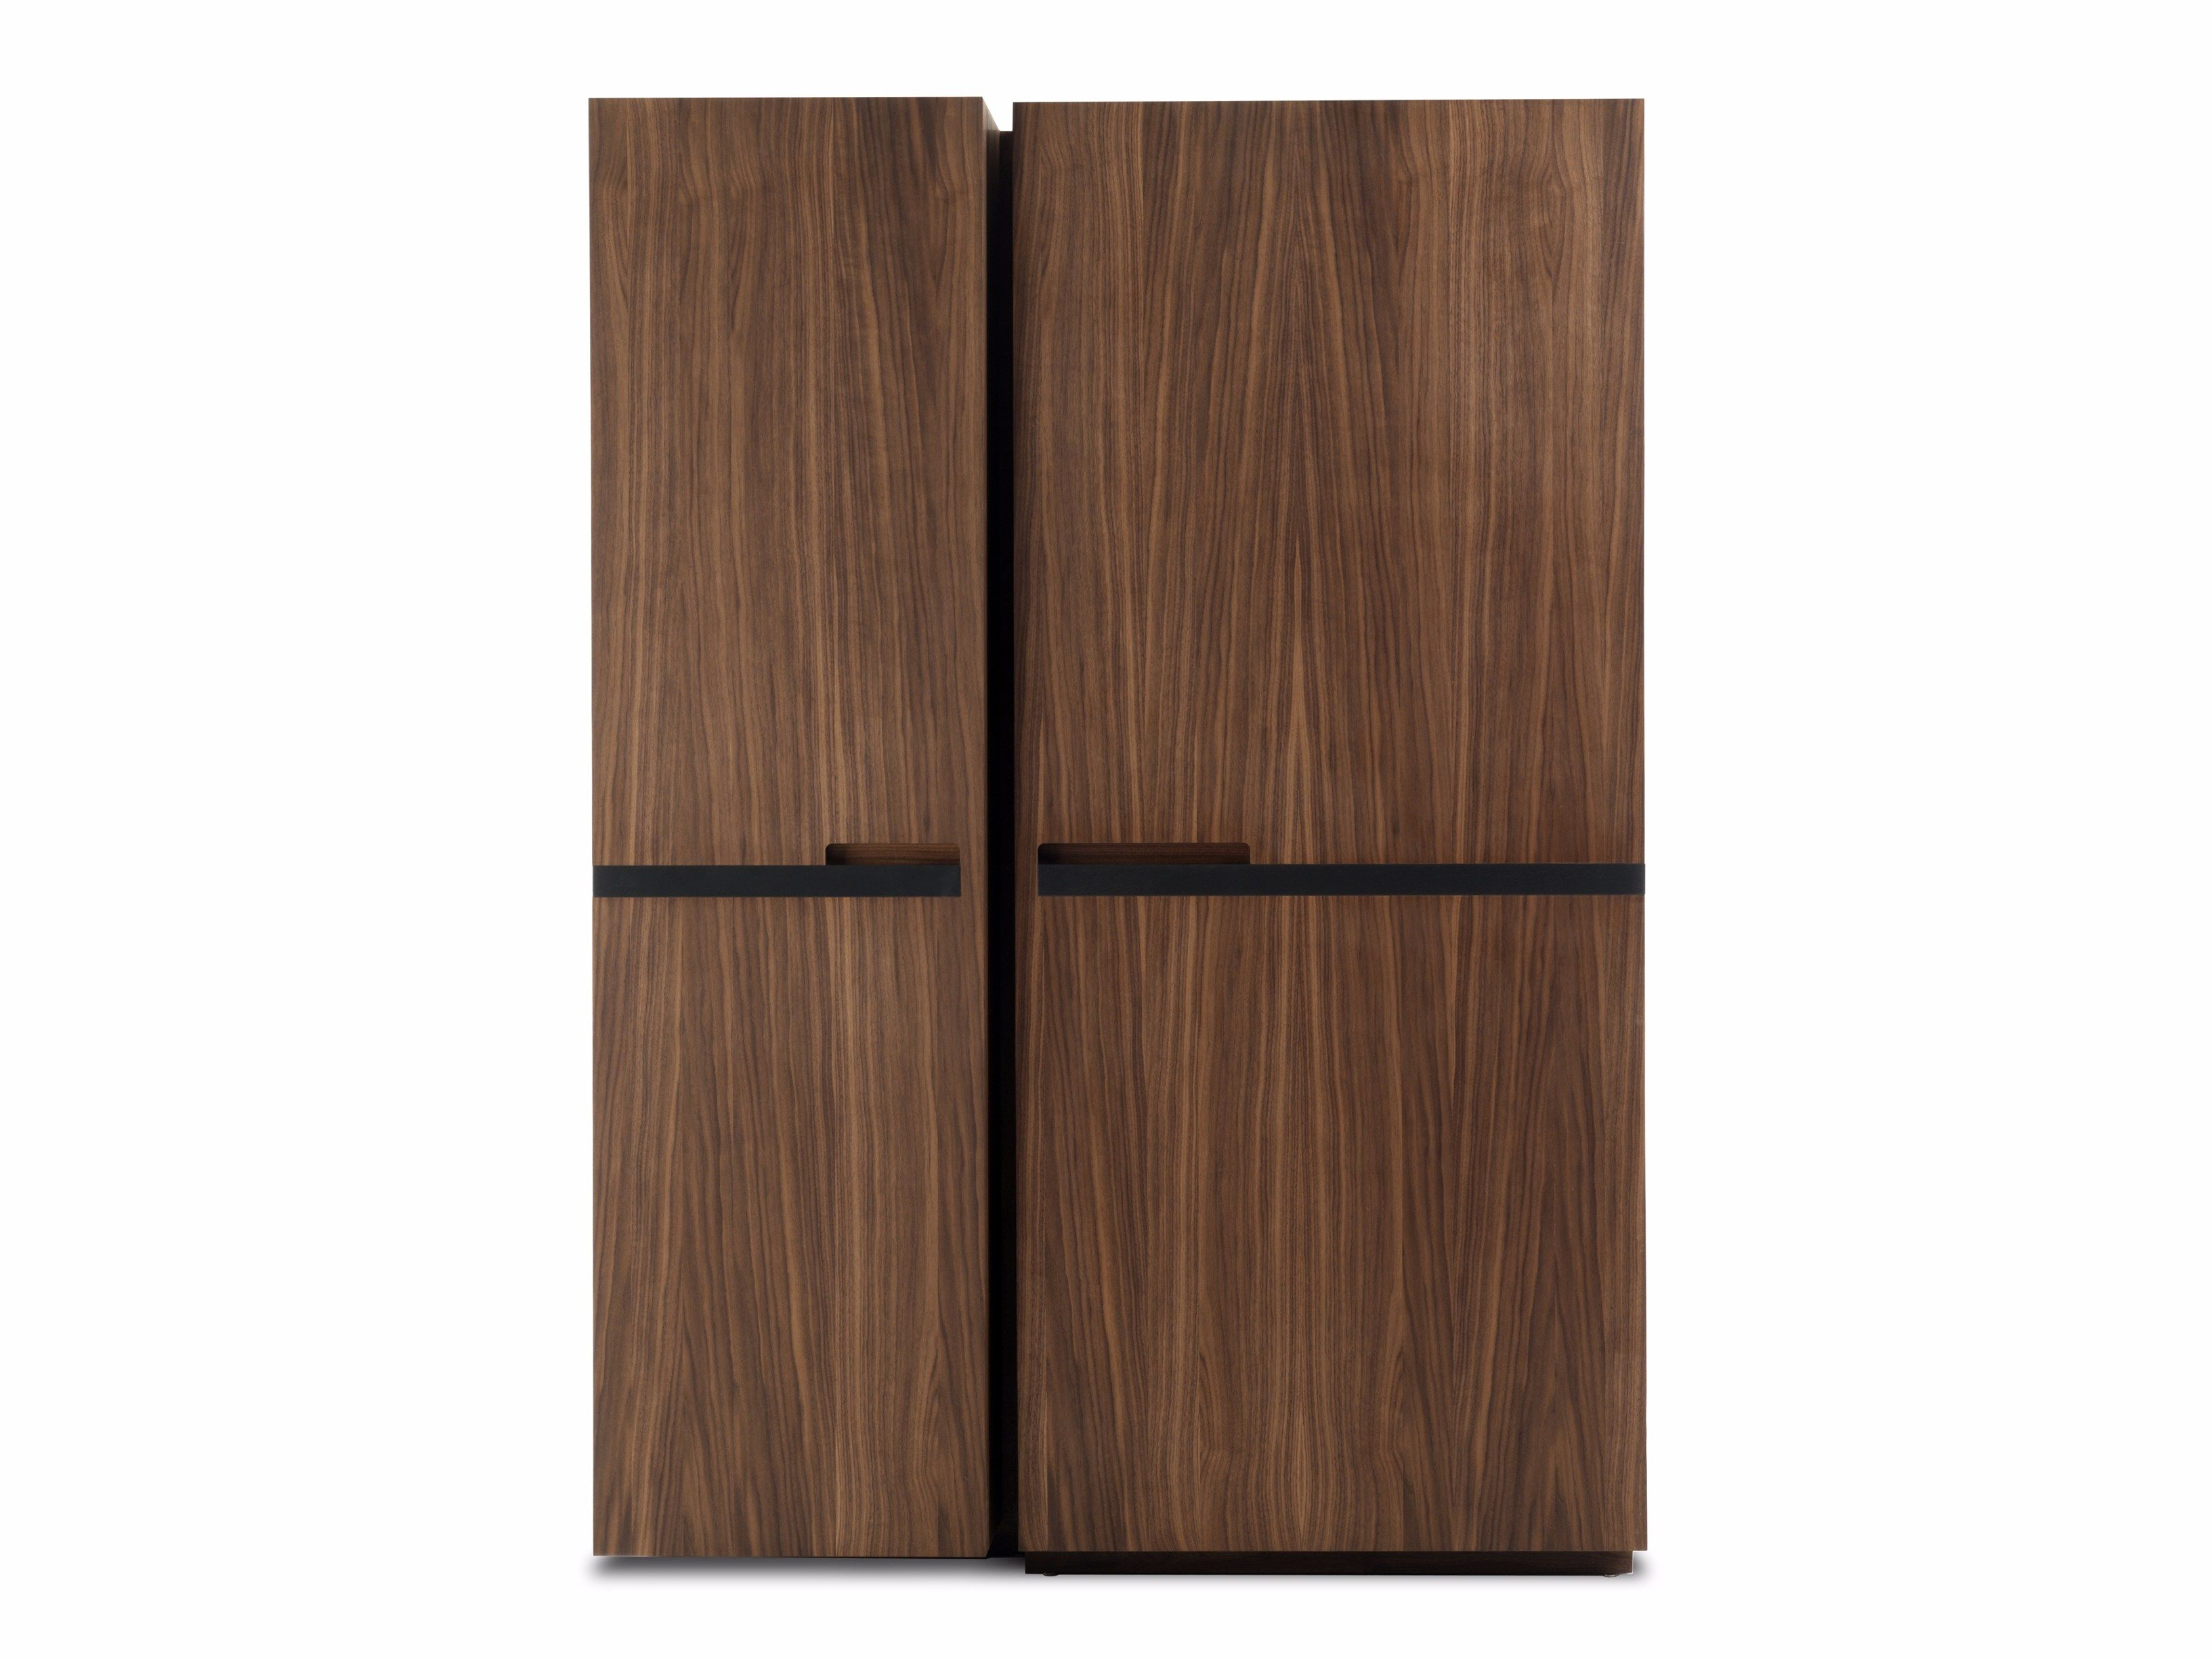 gratia wardrobes buy best designs mirror cupboards online door wooden wardrobe collections cupboard